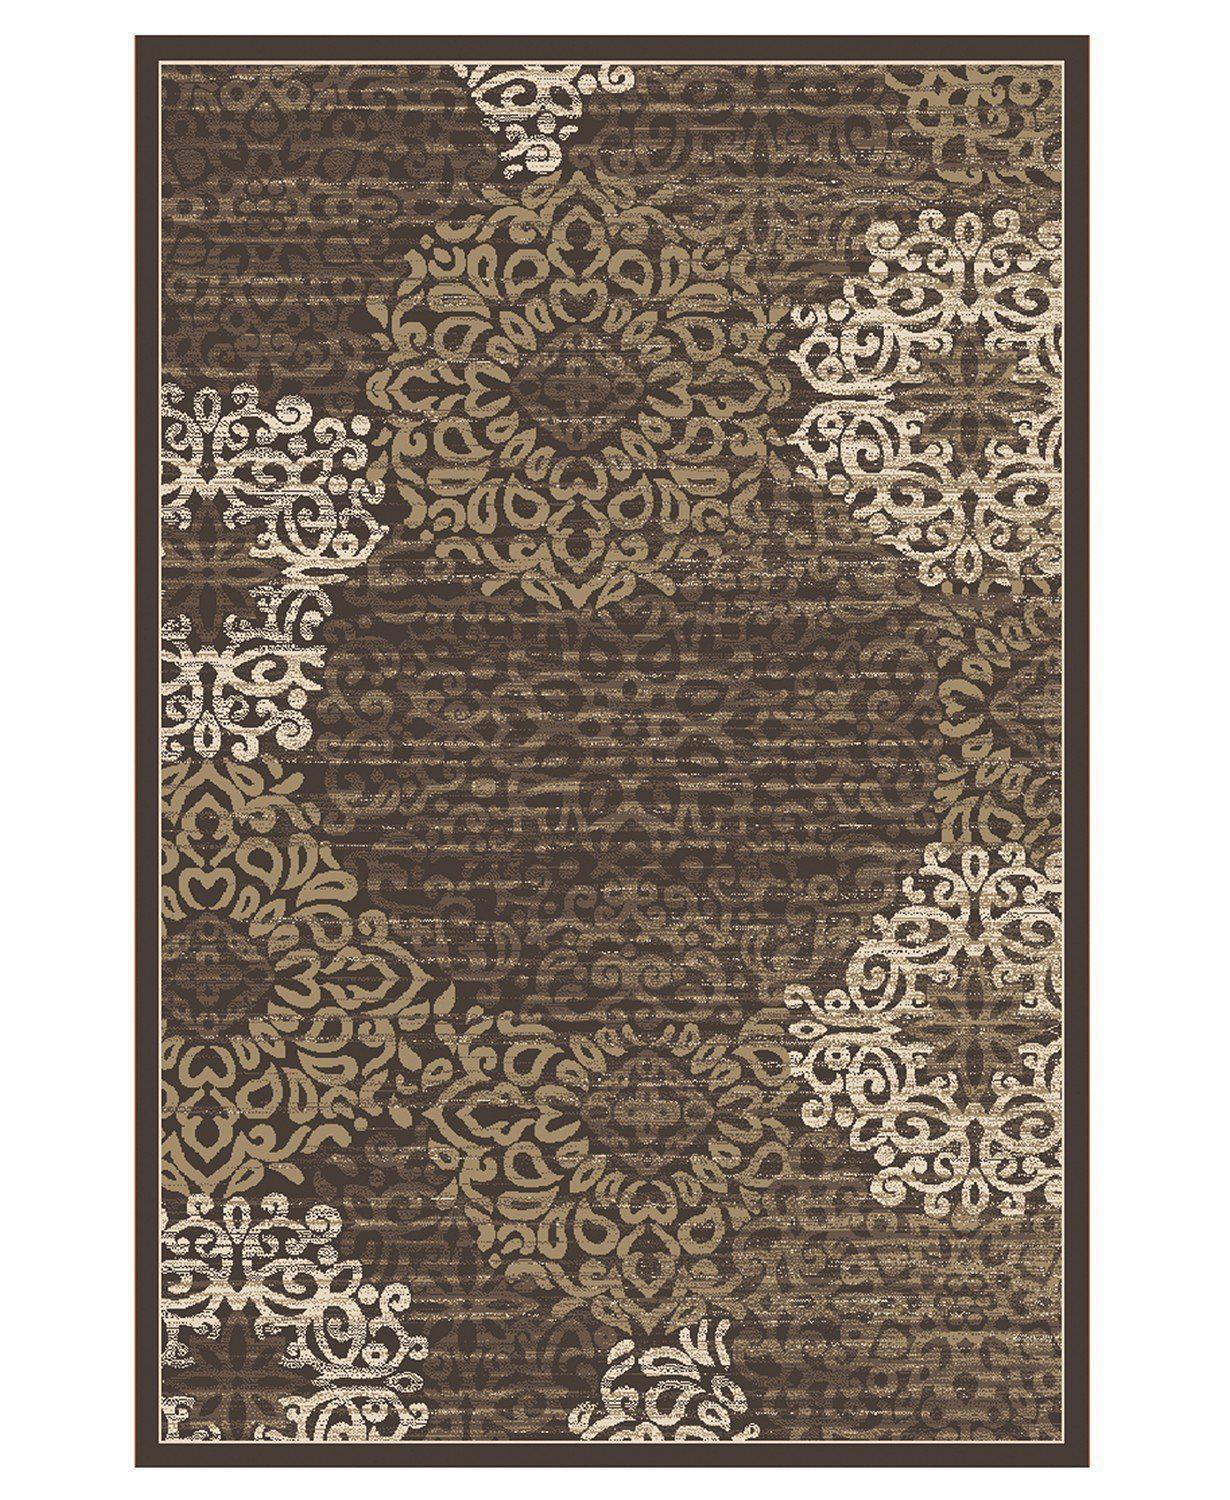 Teramo Intrigue Brown-Area Rugs-KM Home-2' 02'' x 7' 07''-The Rug Truck